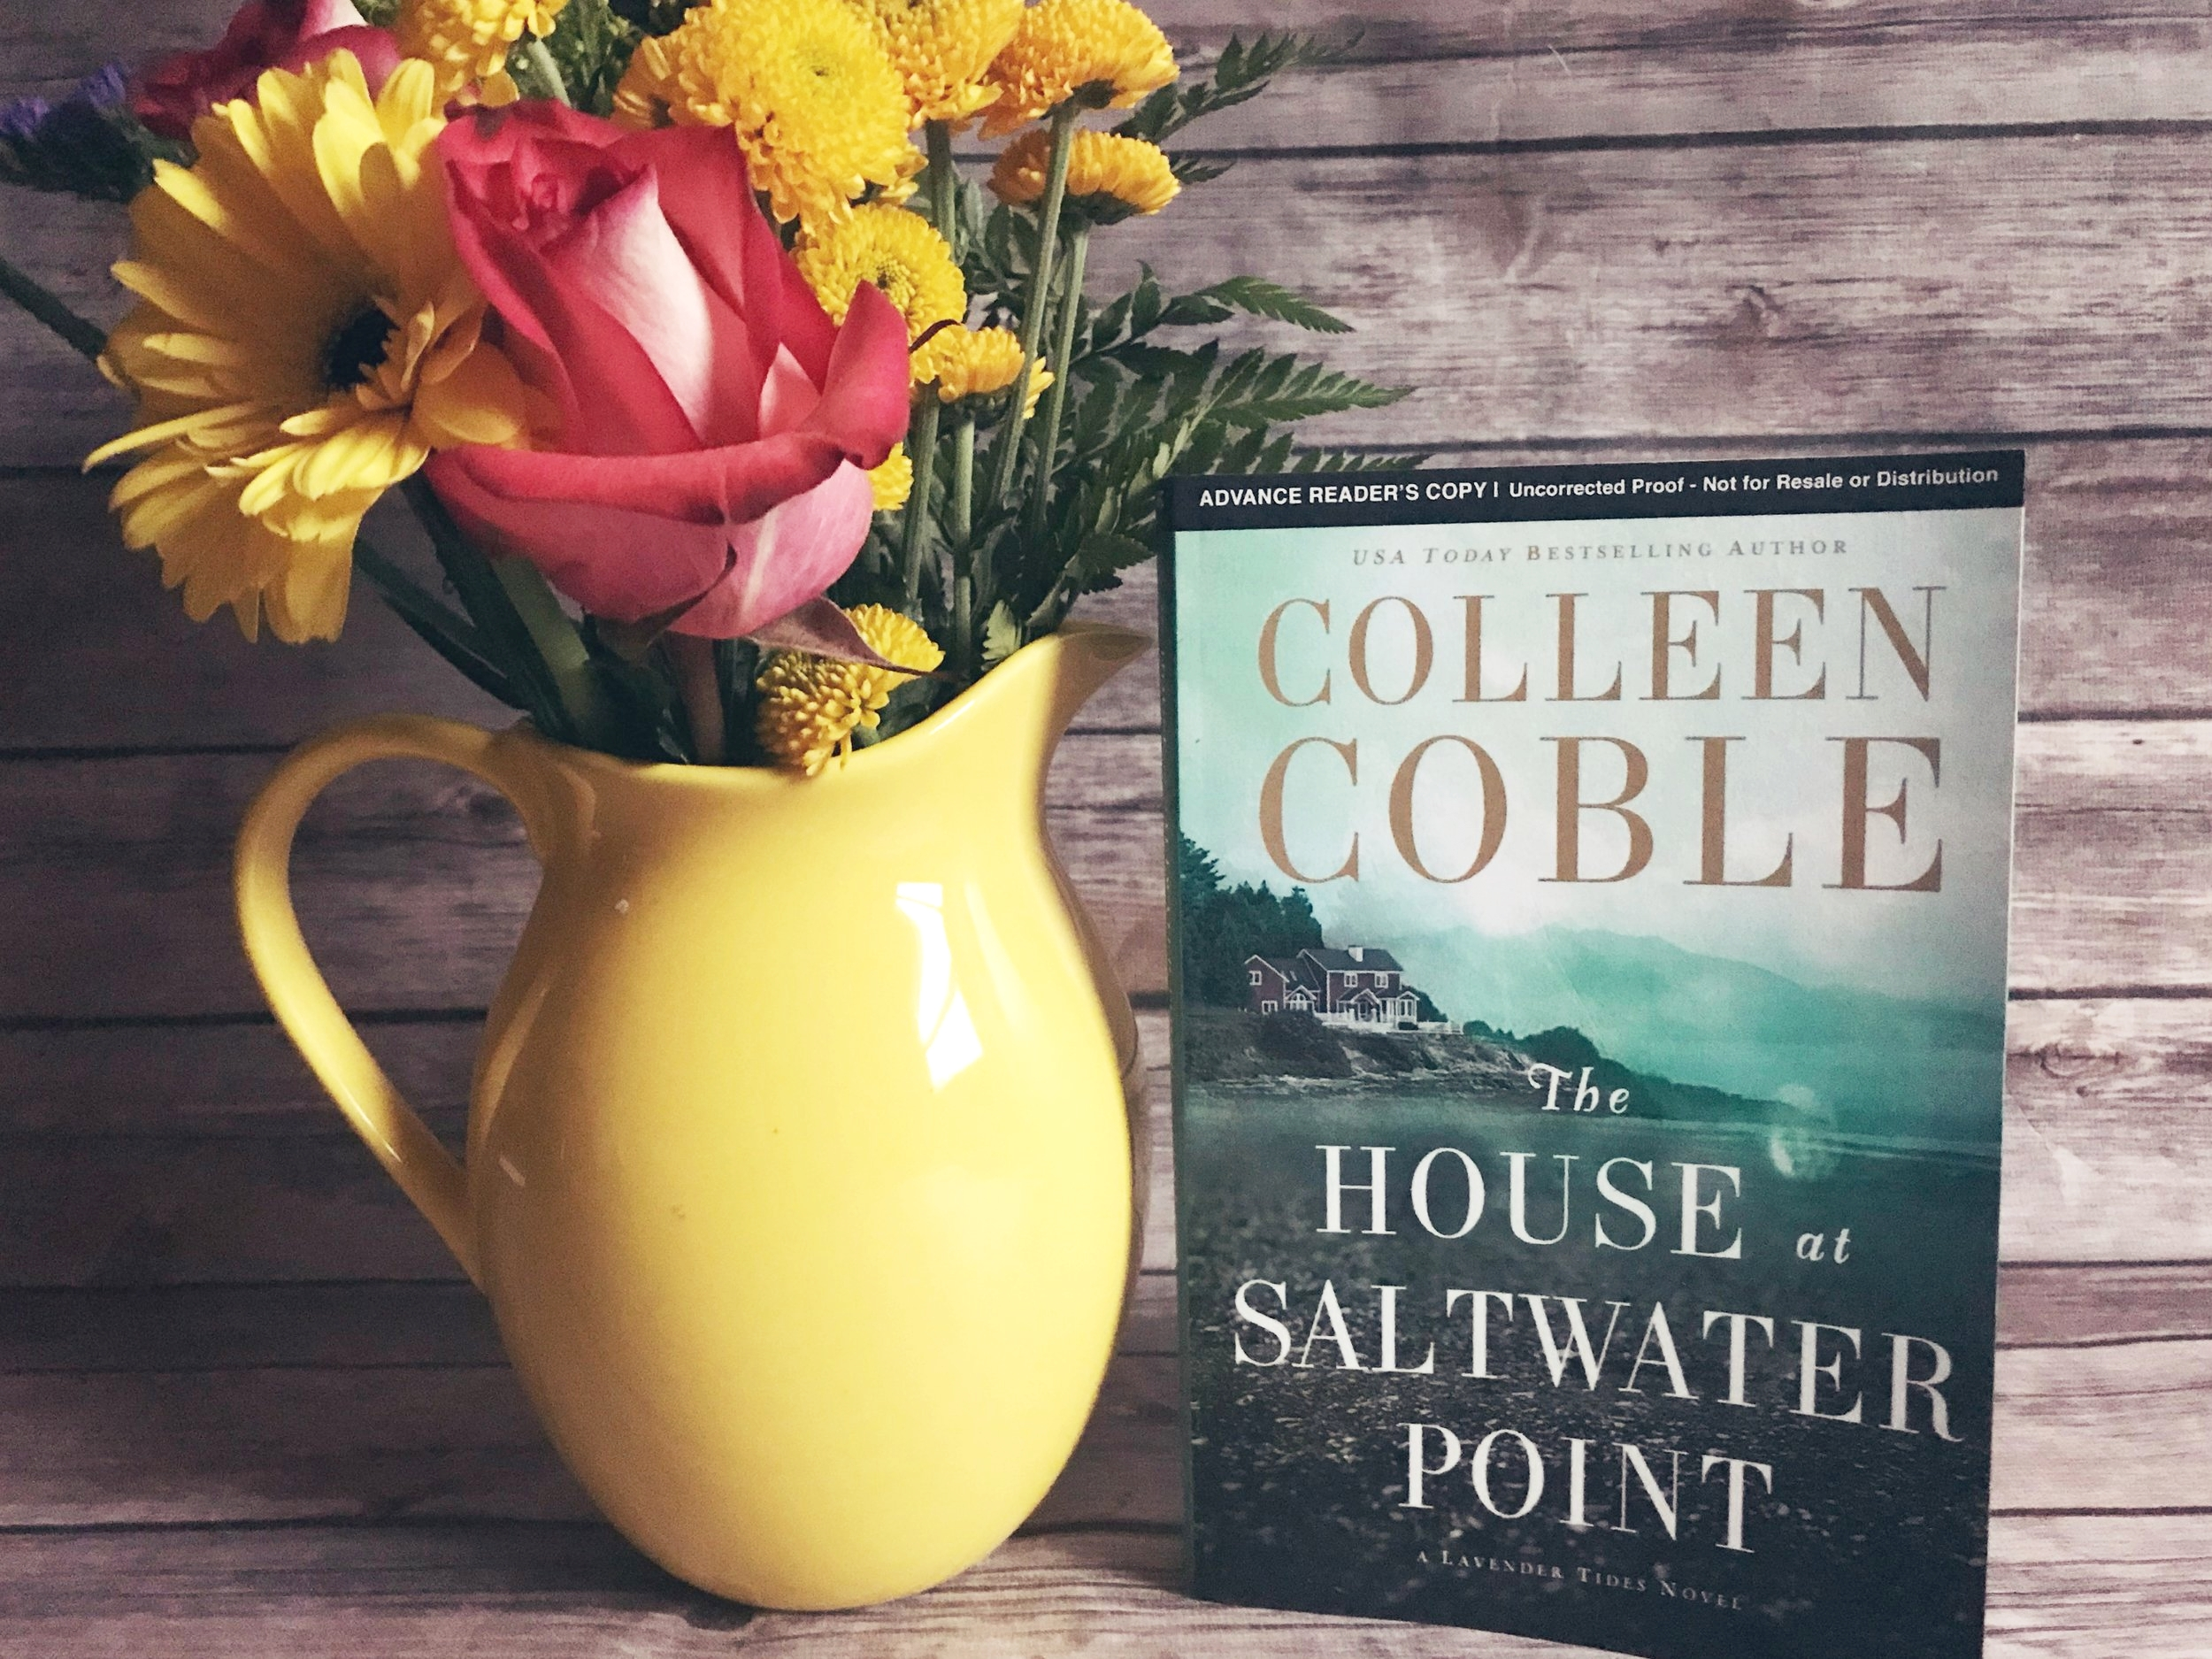 the house at saltwater point colleen coble